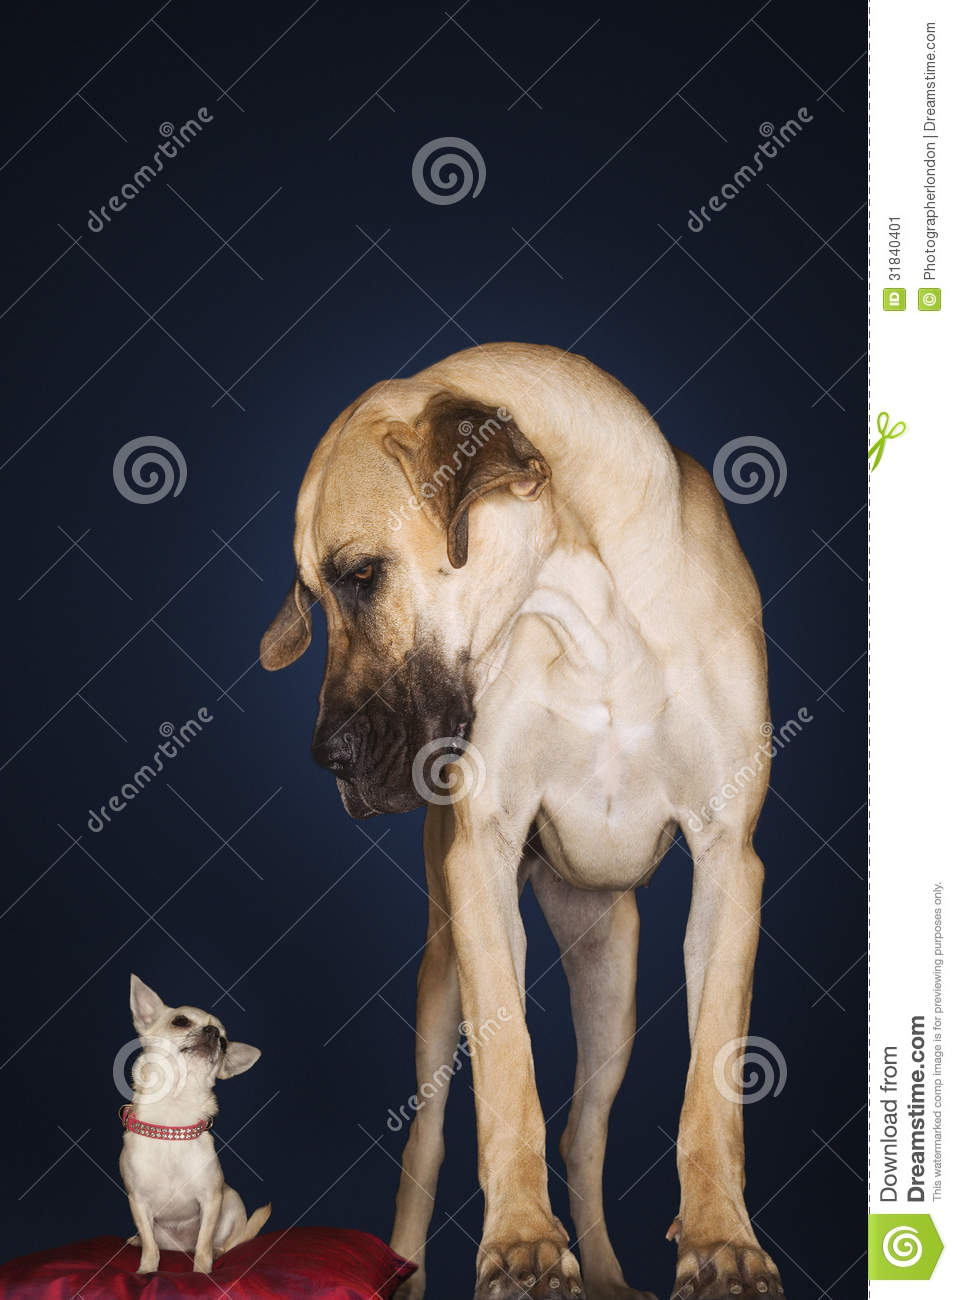 Chihuahua On Red Pillow With Great Dane Standing Alongside